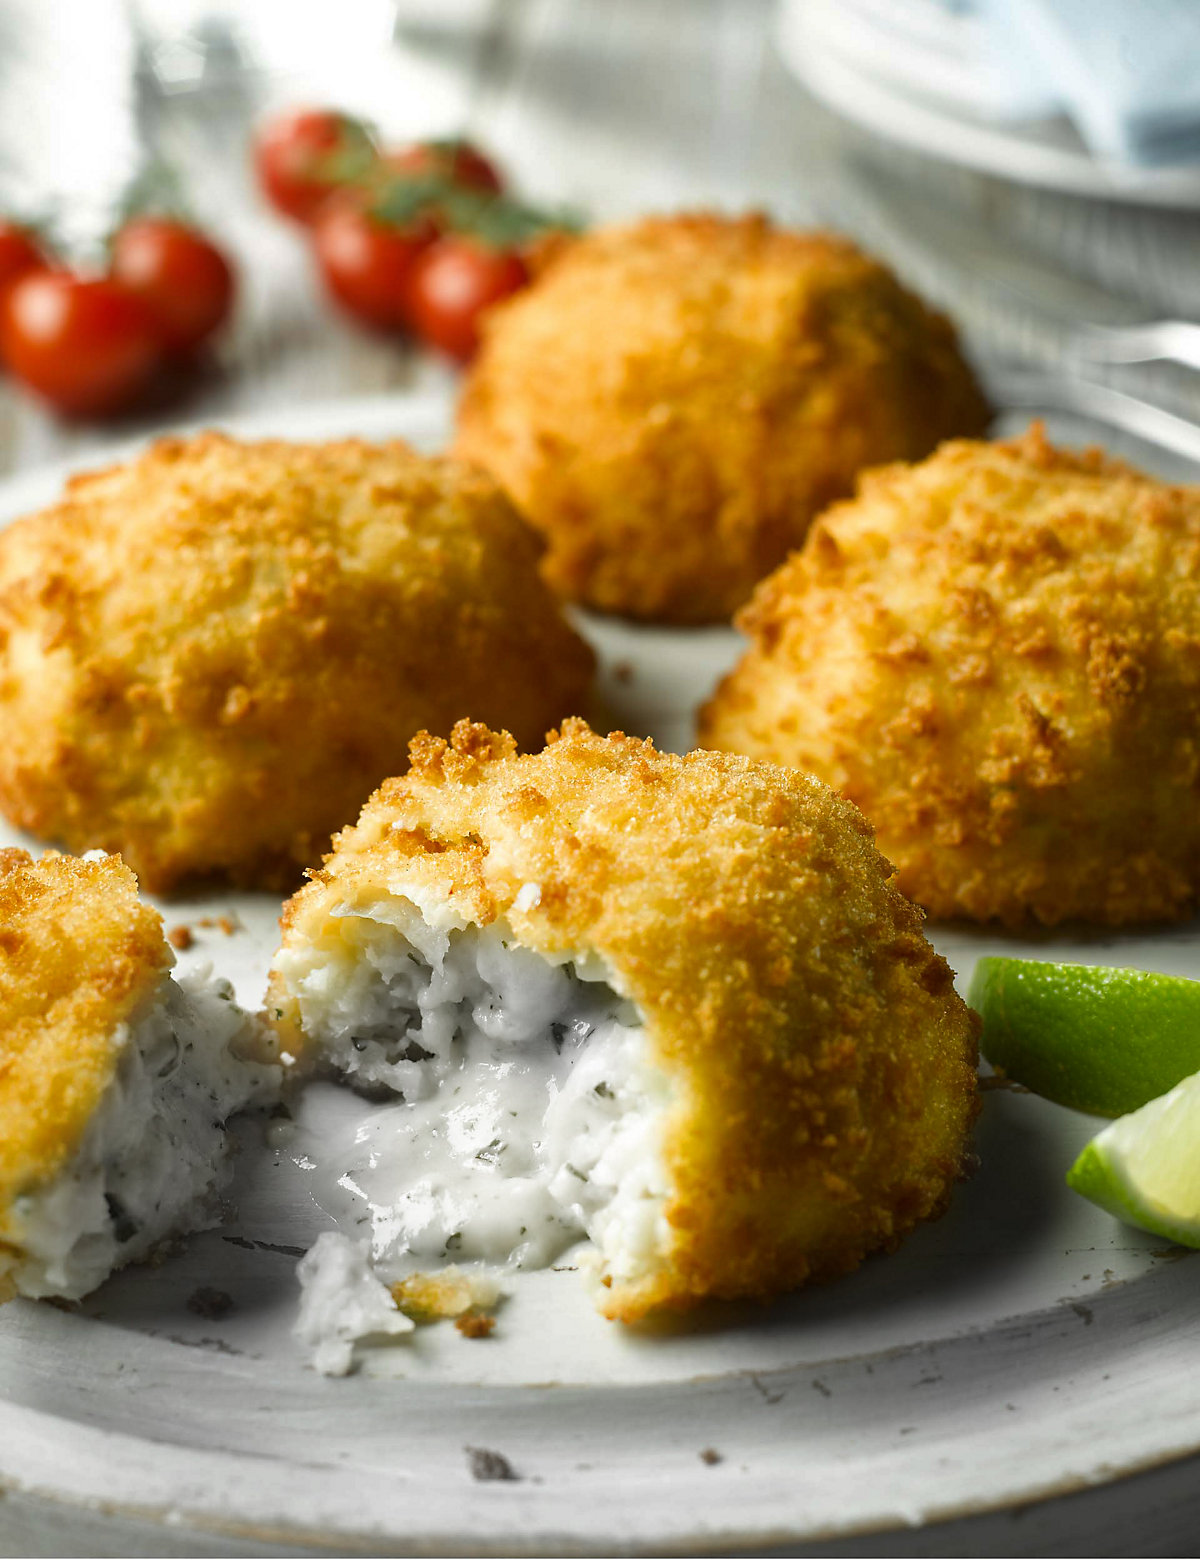 ... Marks and Spencer | 4 Melting Middle Cod Fish Cake with Parsley Sauce